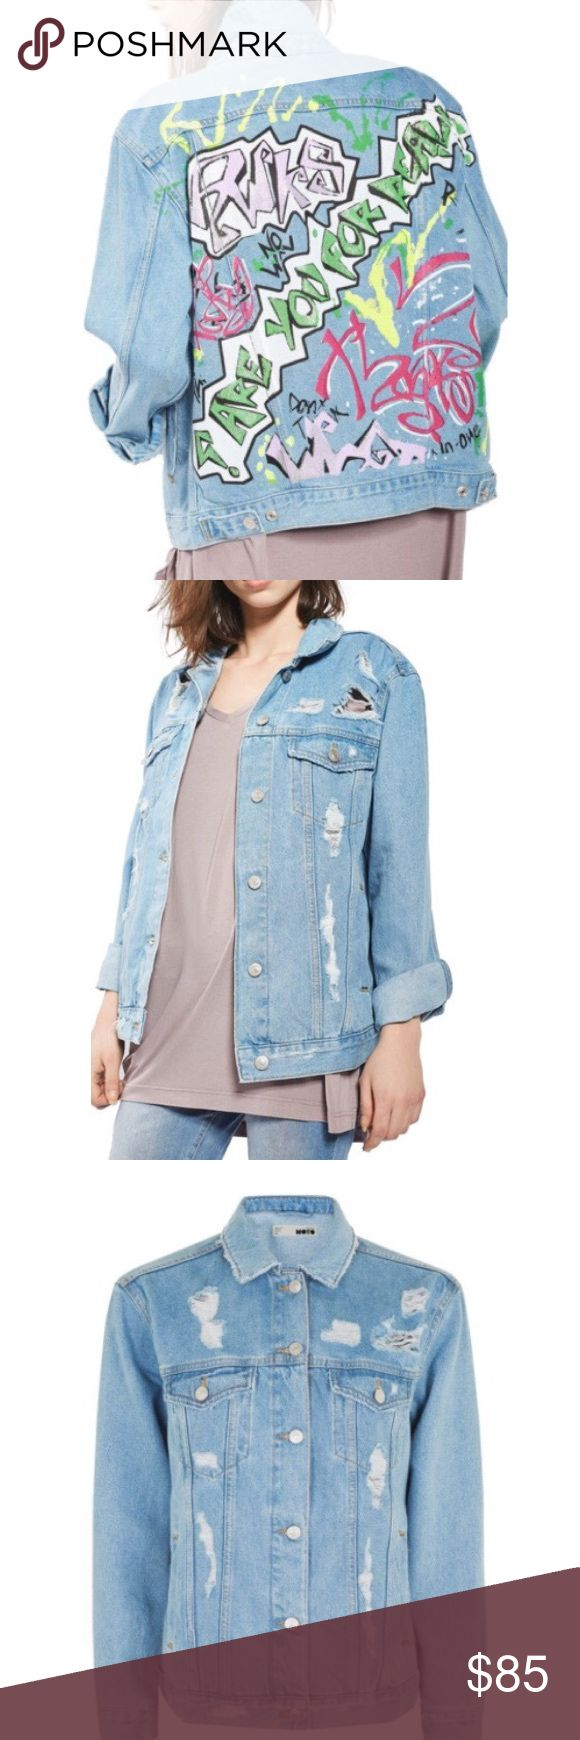 Topshop denim  jacket Cute Top shop graffiti jean jacket. Mid stone wash, front pockets, distressed 190% cotton. Oversized fit. New with tags from non smoking home Topshop Jackets & Coats